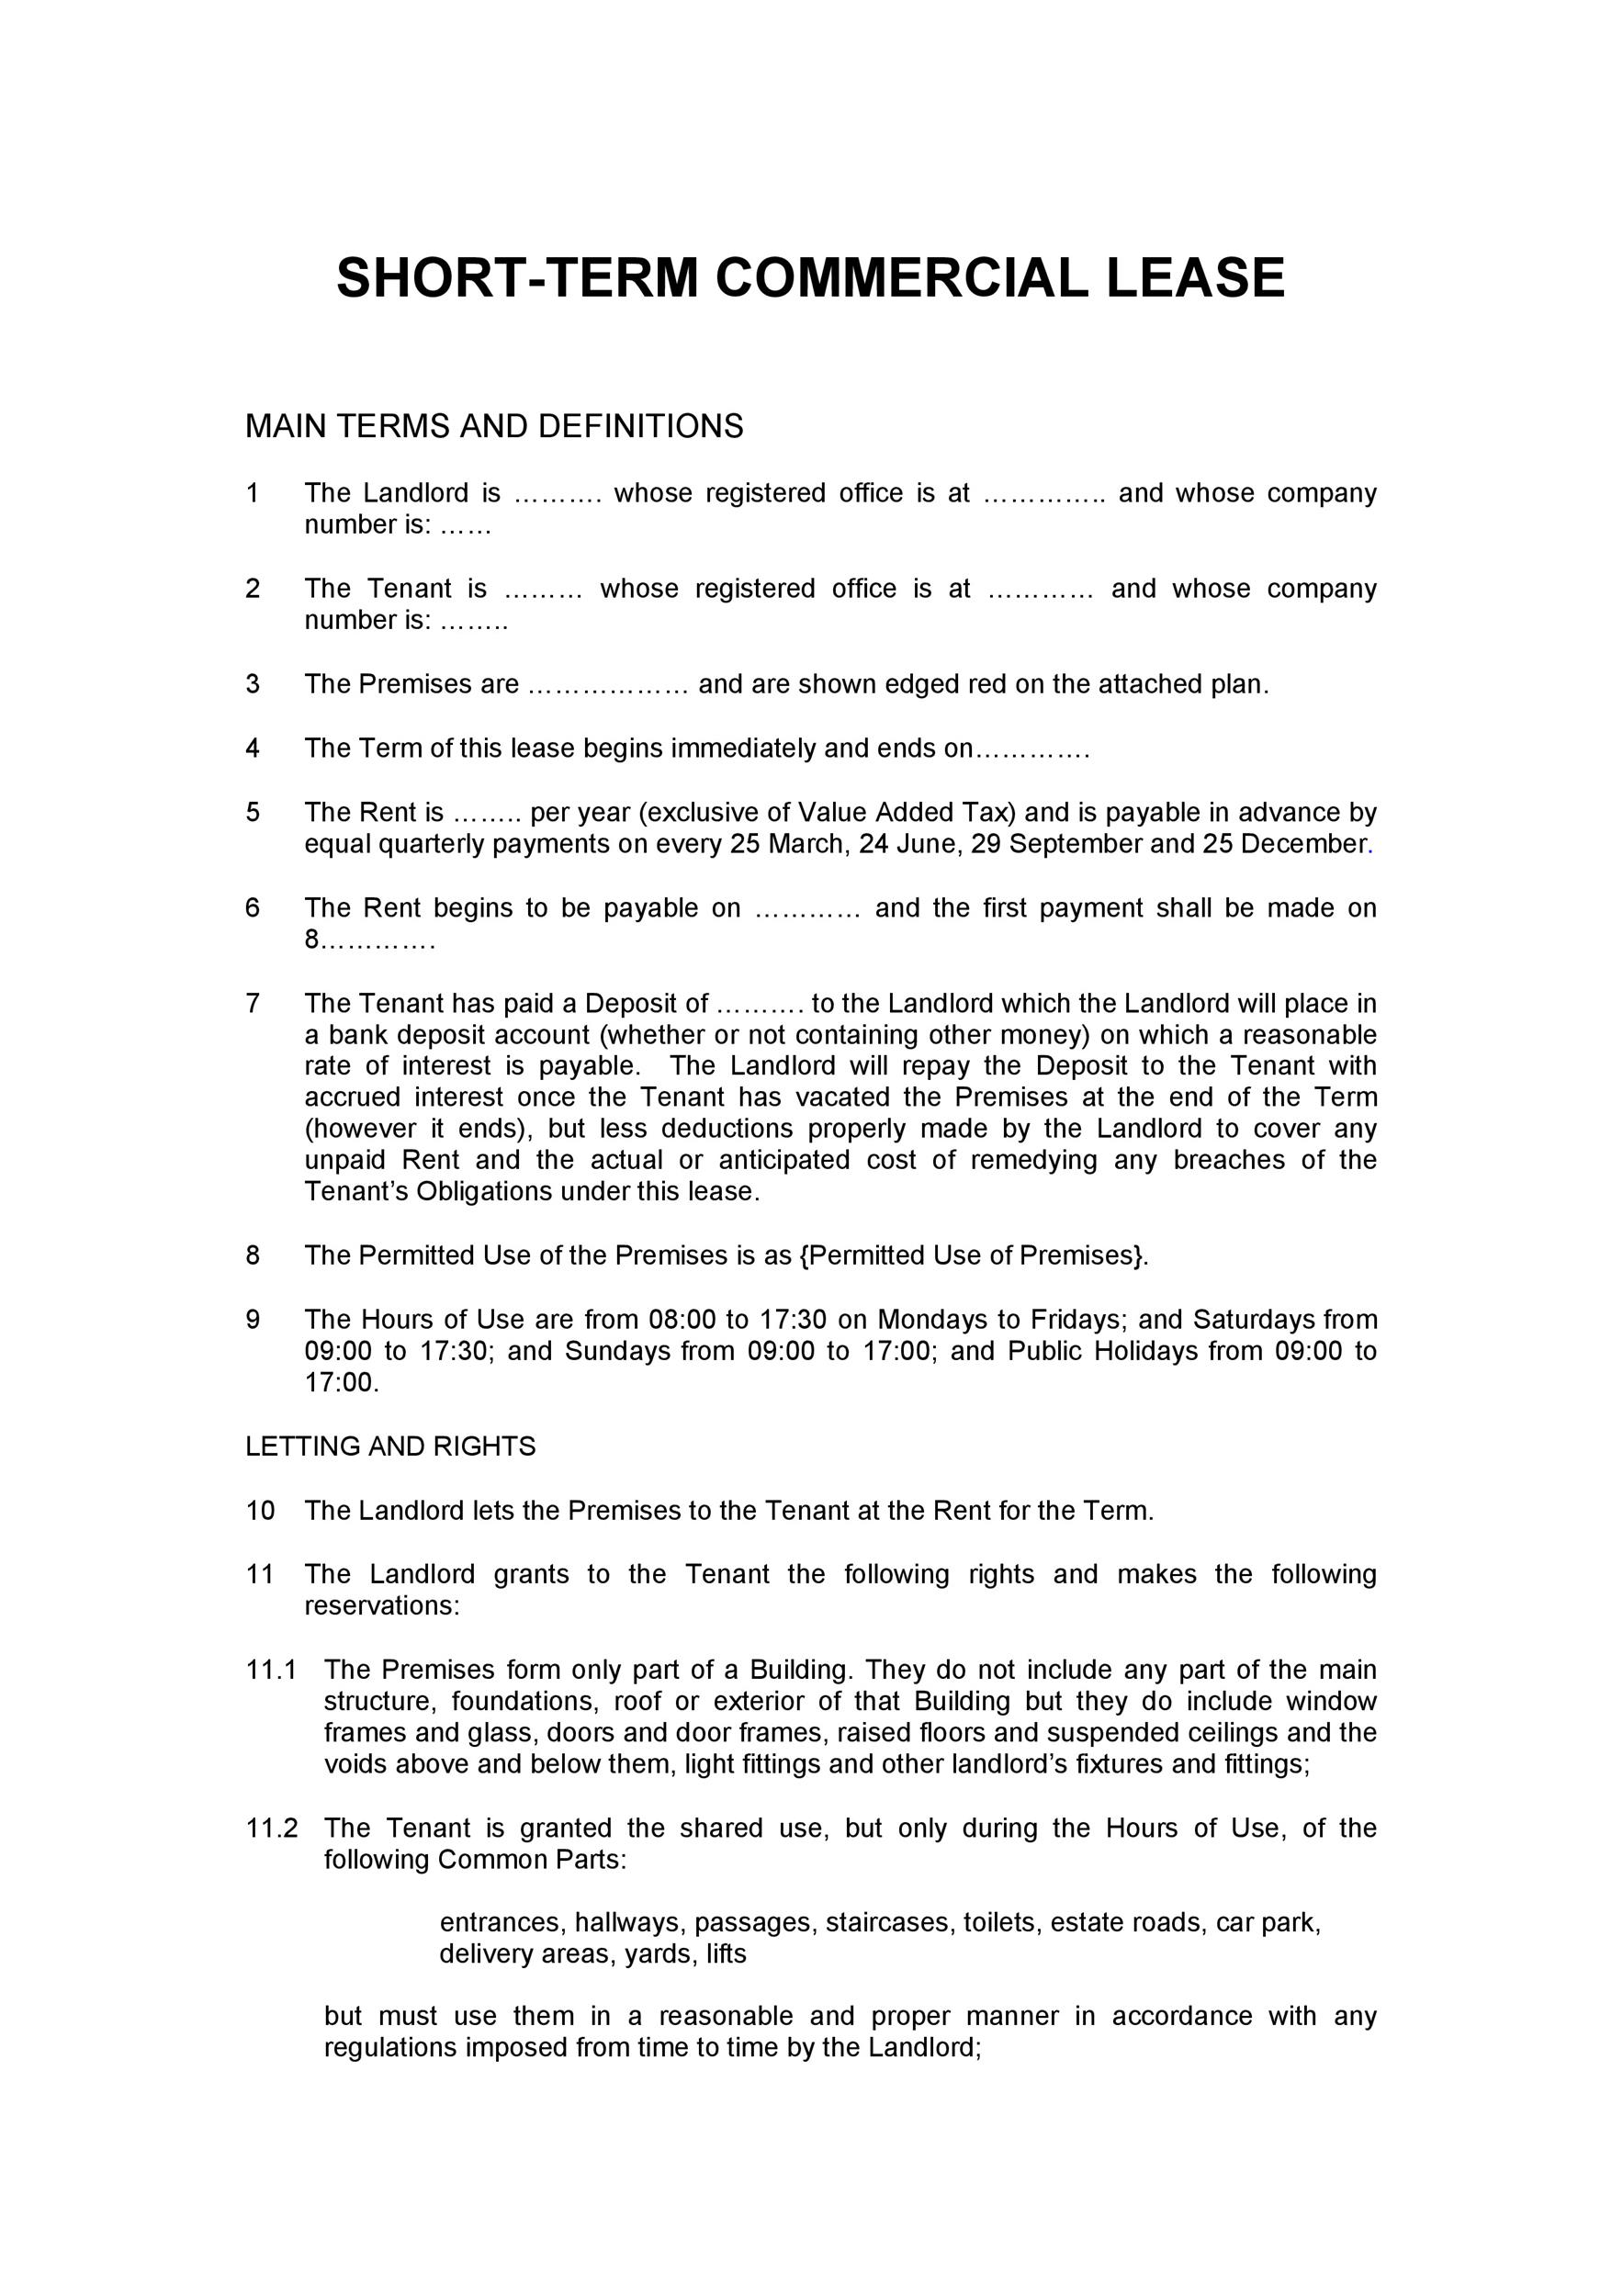 26 Free Commercial Lease Agreement Templates Template Lab – Commercial Lease Agreement Template Free